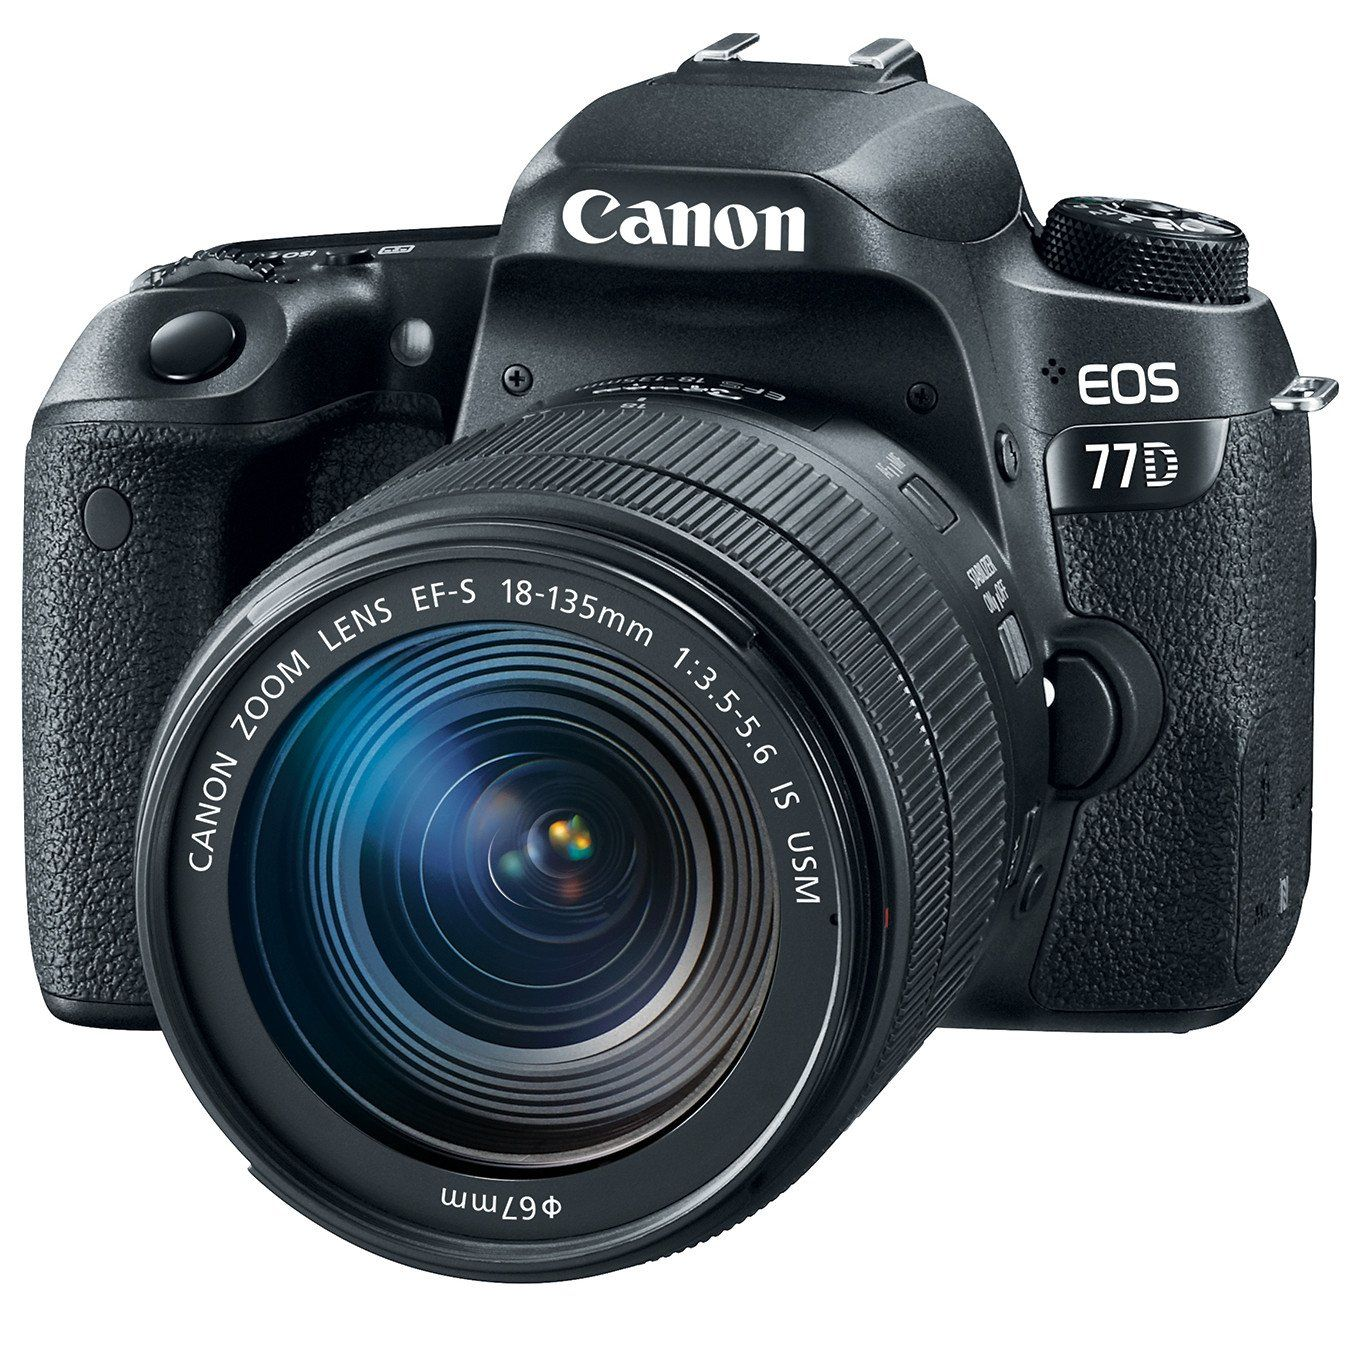 Canon Eos 77d Dslr Camera With 18 135mm Is Stm Lens In 2021 Canon Dslr Camera Canon Dslr Dslr